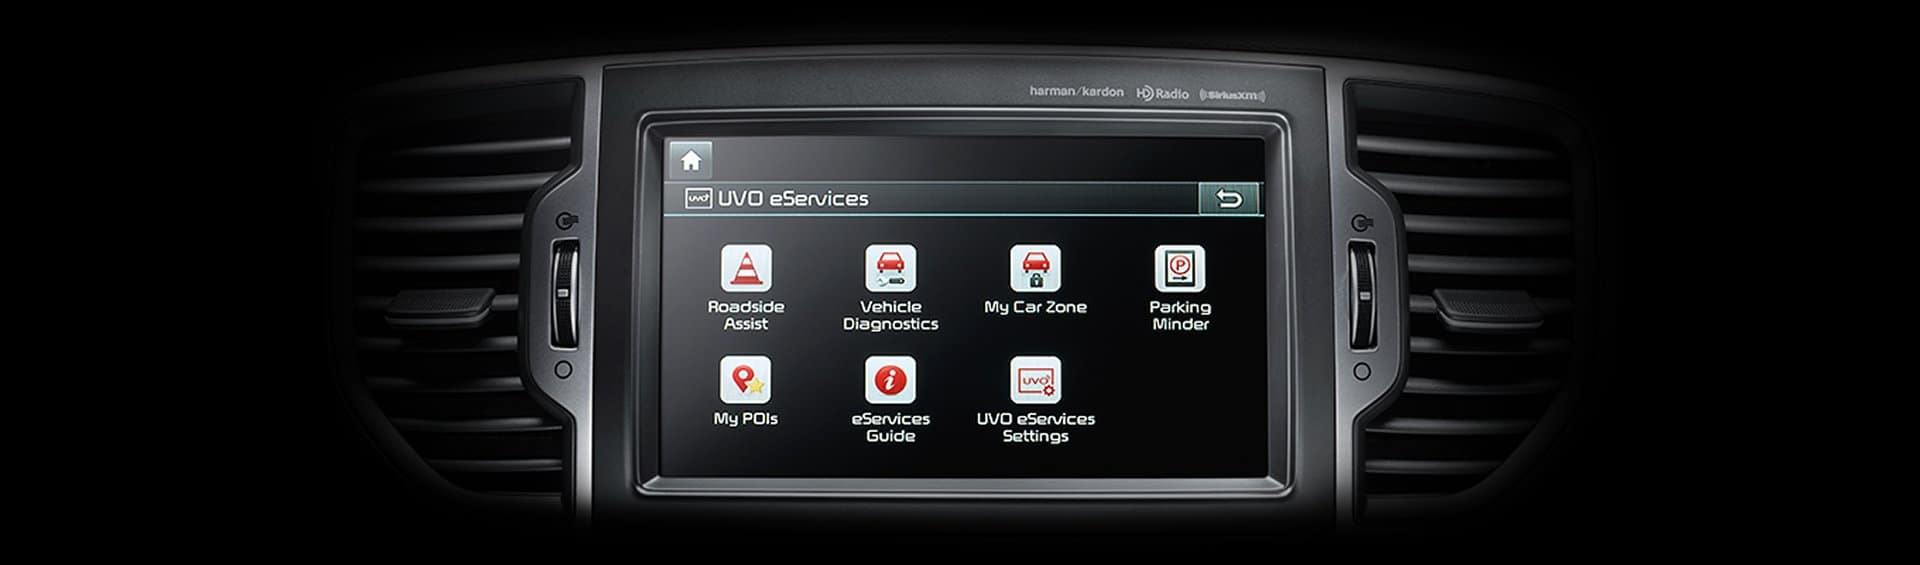 uvo eservices beyer kia falls church